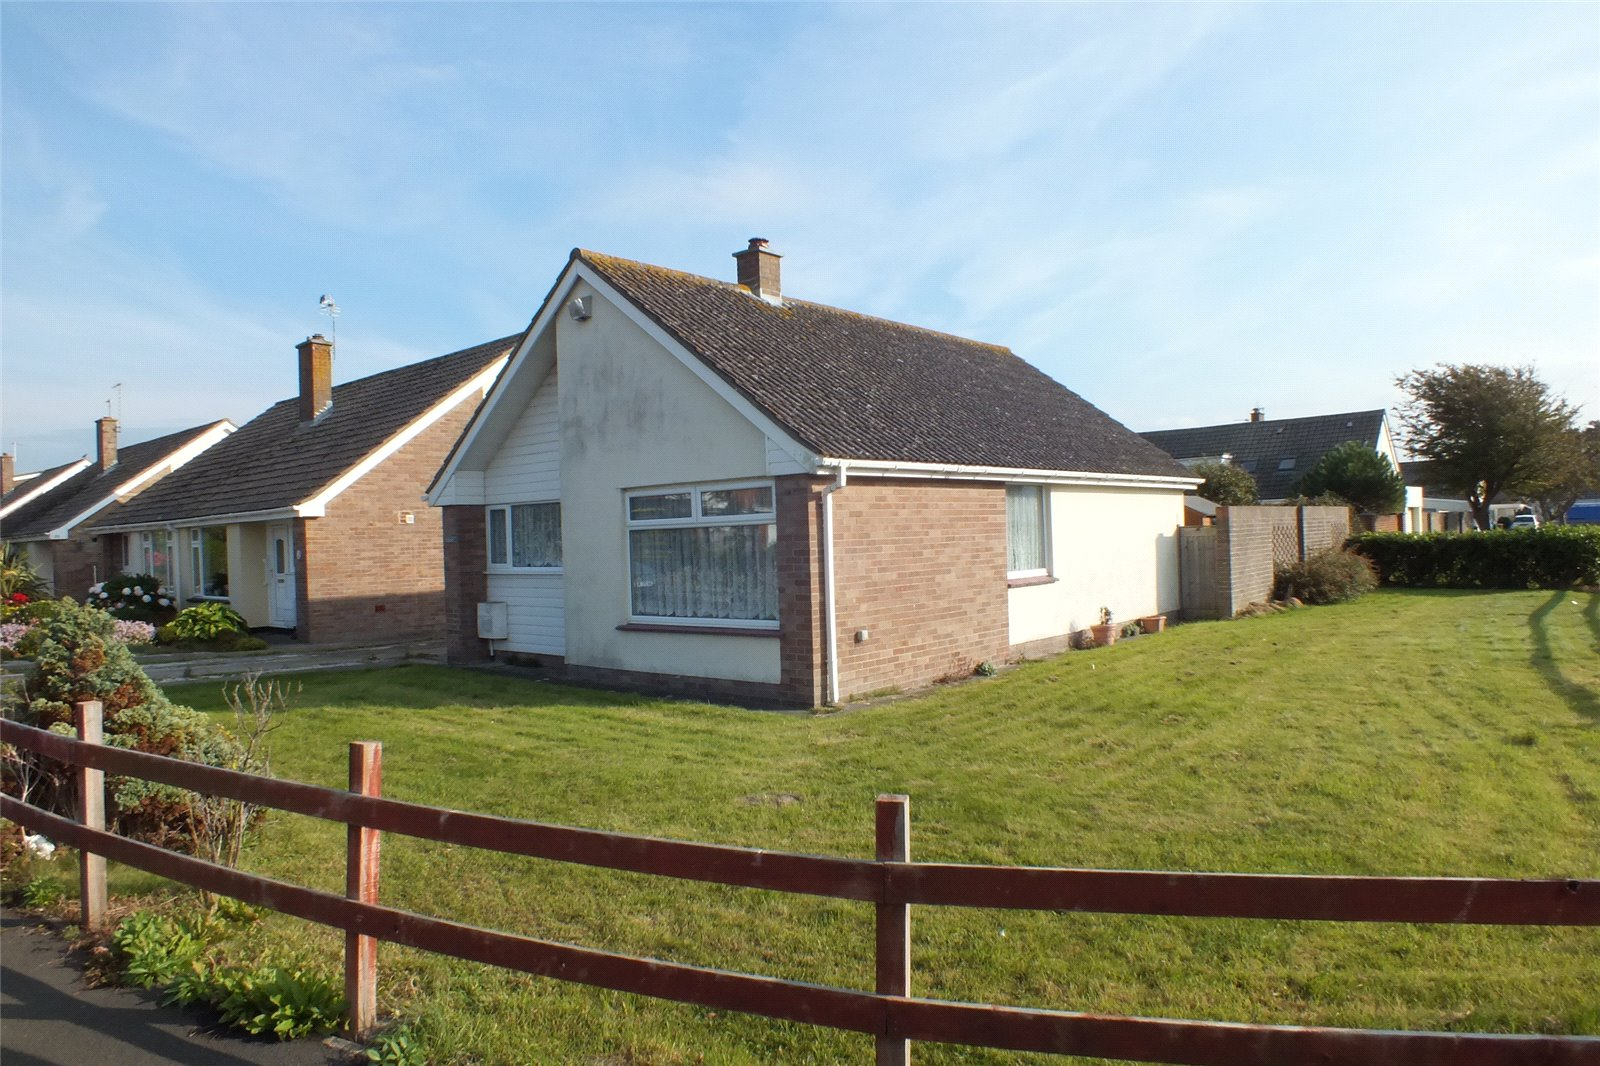 2 Bedrooms Bungalow for sale in Steart Avenue Burnham On Sea Somerset TA8